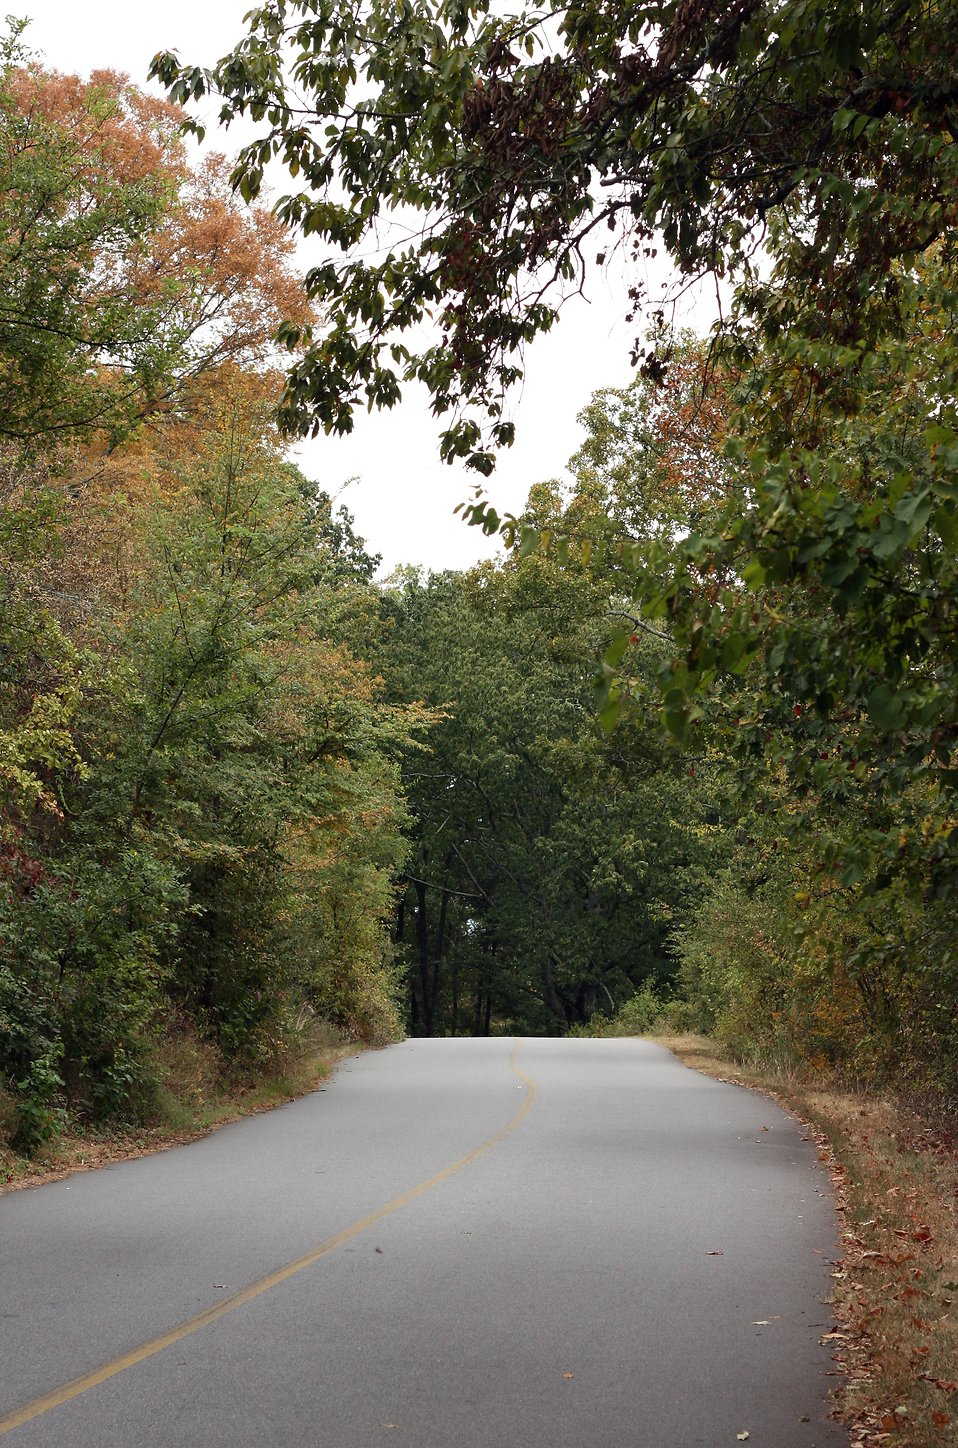 A winding road surrounded by trees in early Autumn : Free Stock Photo